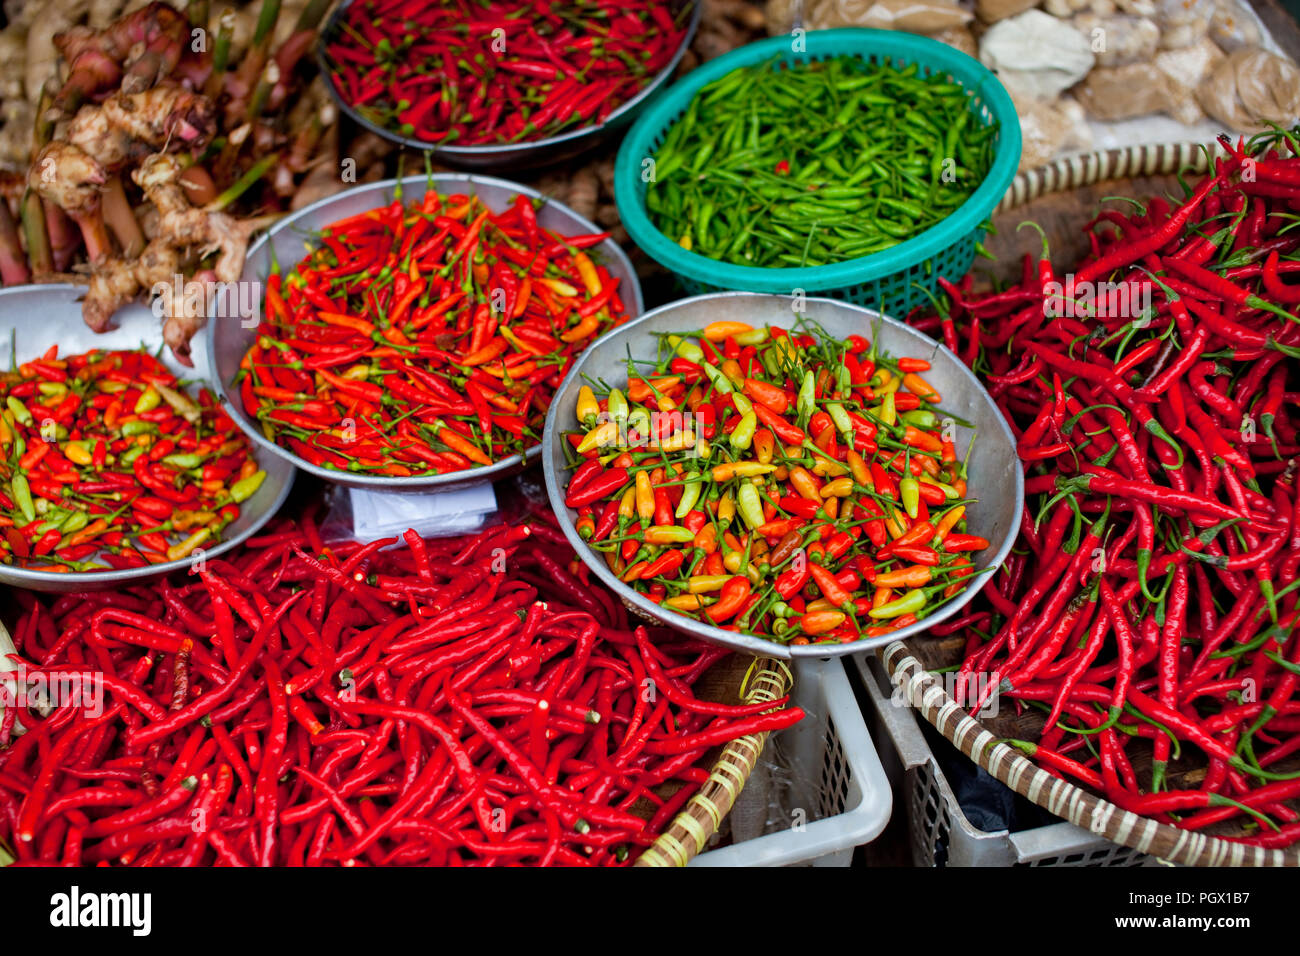 Fresh chillies for sale in a market on Bangka Island, Indonesia. - Stock Image